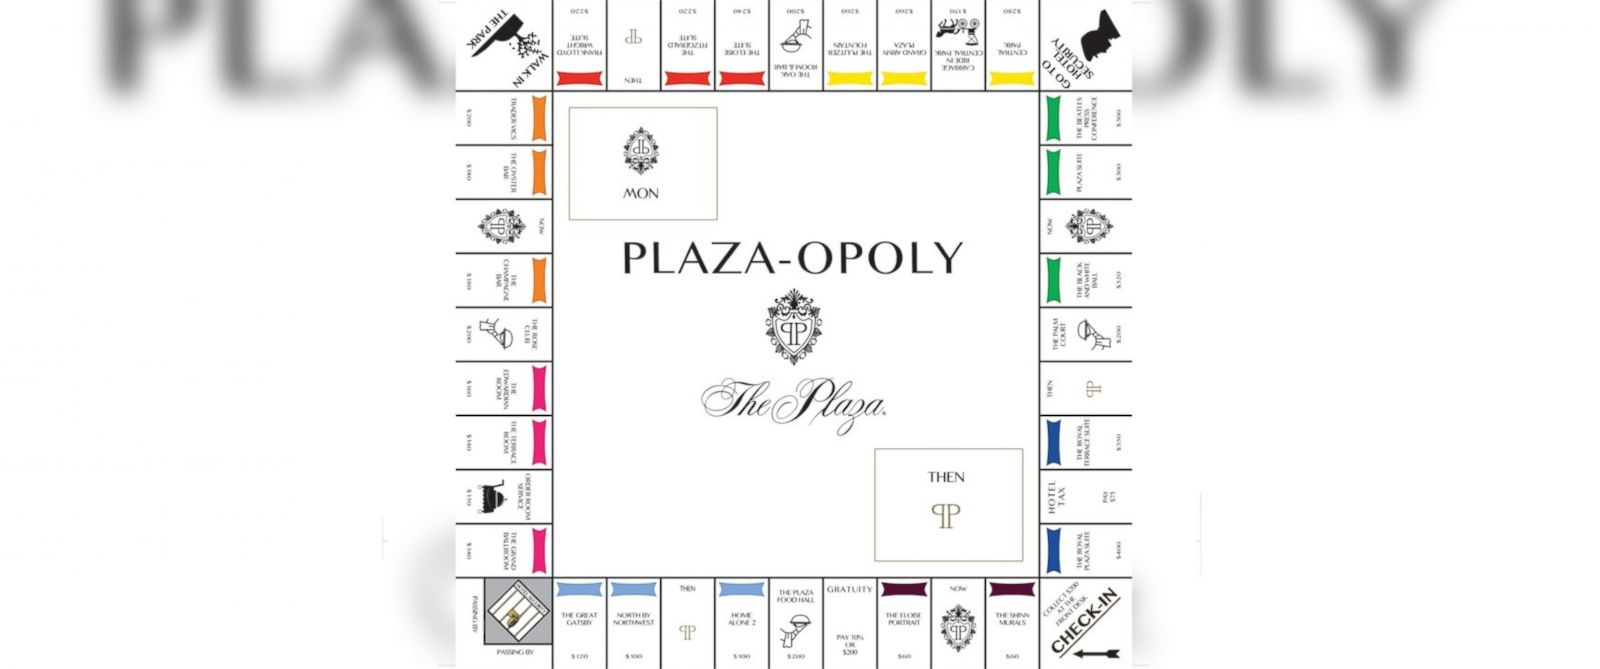 PHOTO: This month, The Plaza Hotel will be introducing its first ever Plaza-opoly board game